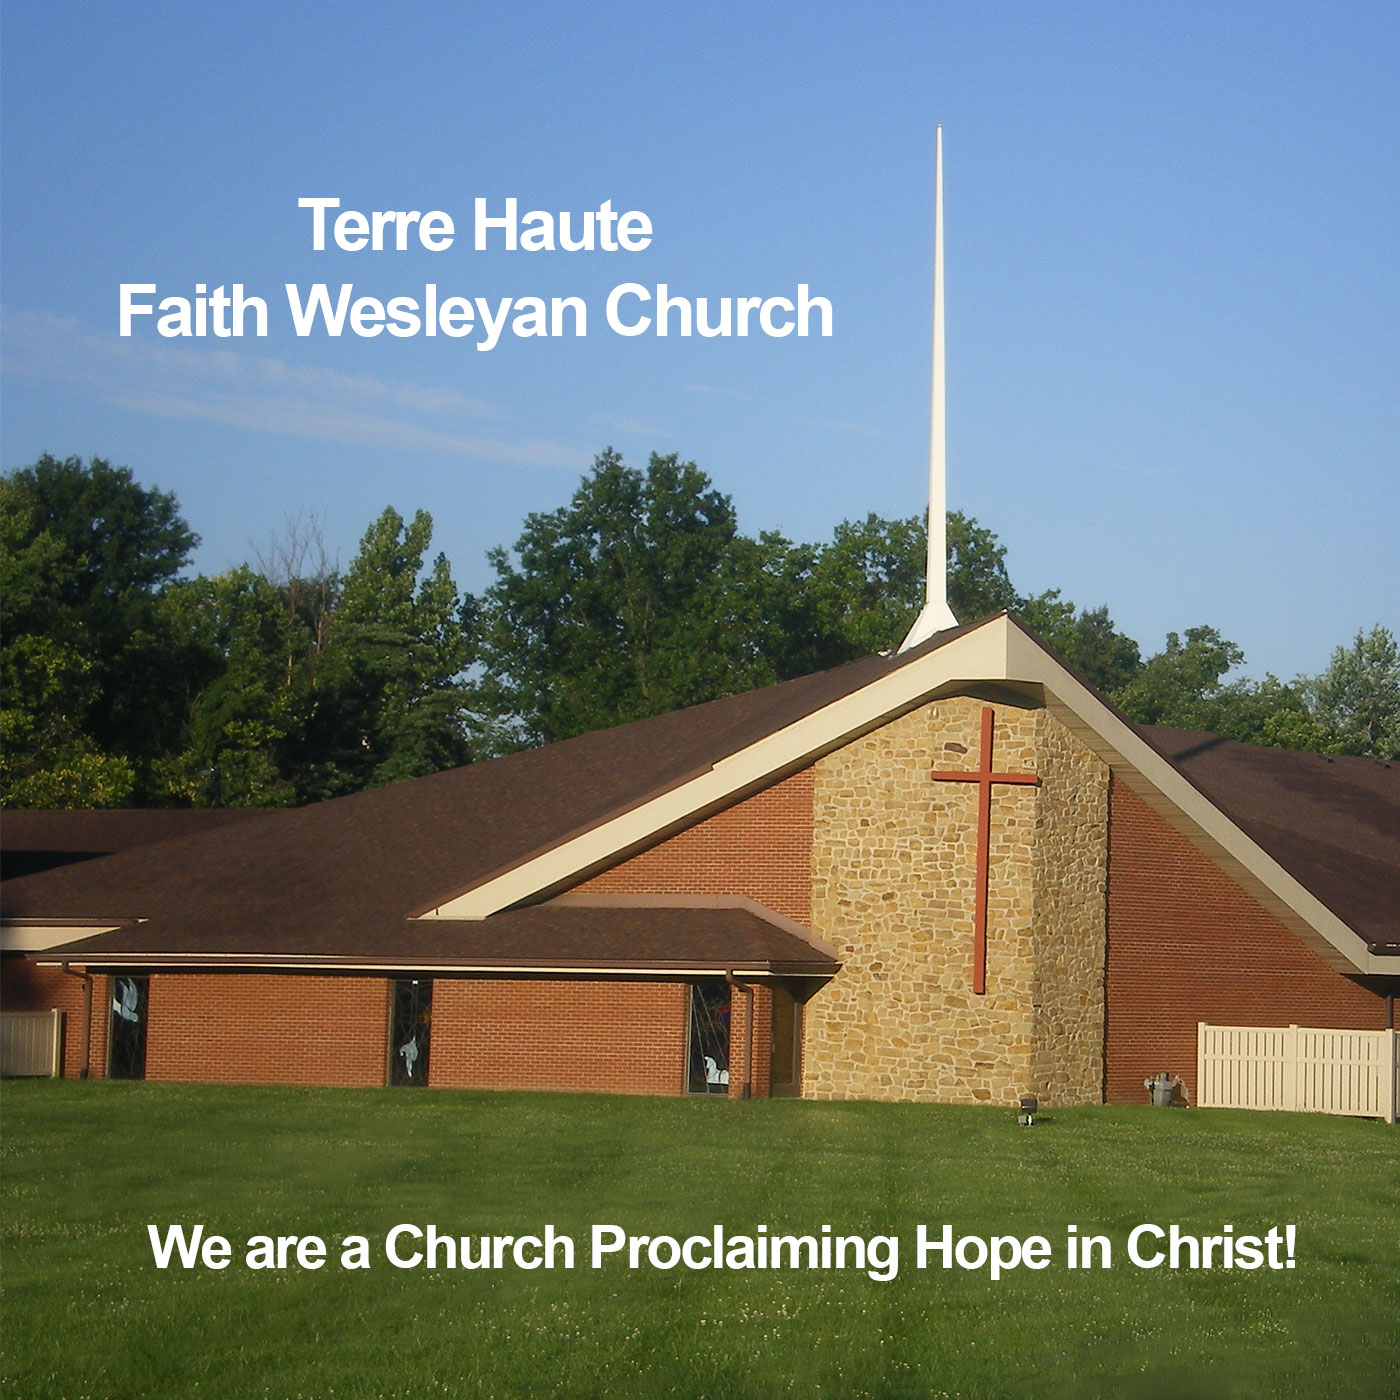 Faith Wesleyan Church | Terre Haute Faith Wesleyan Church